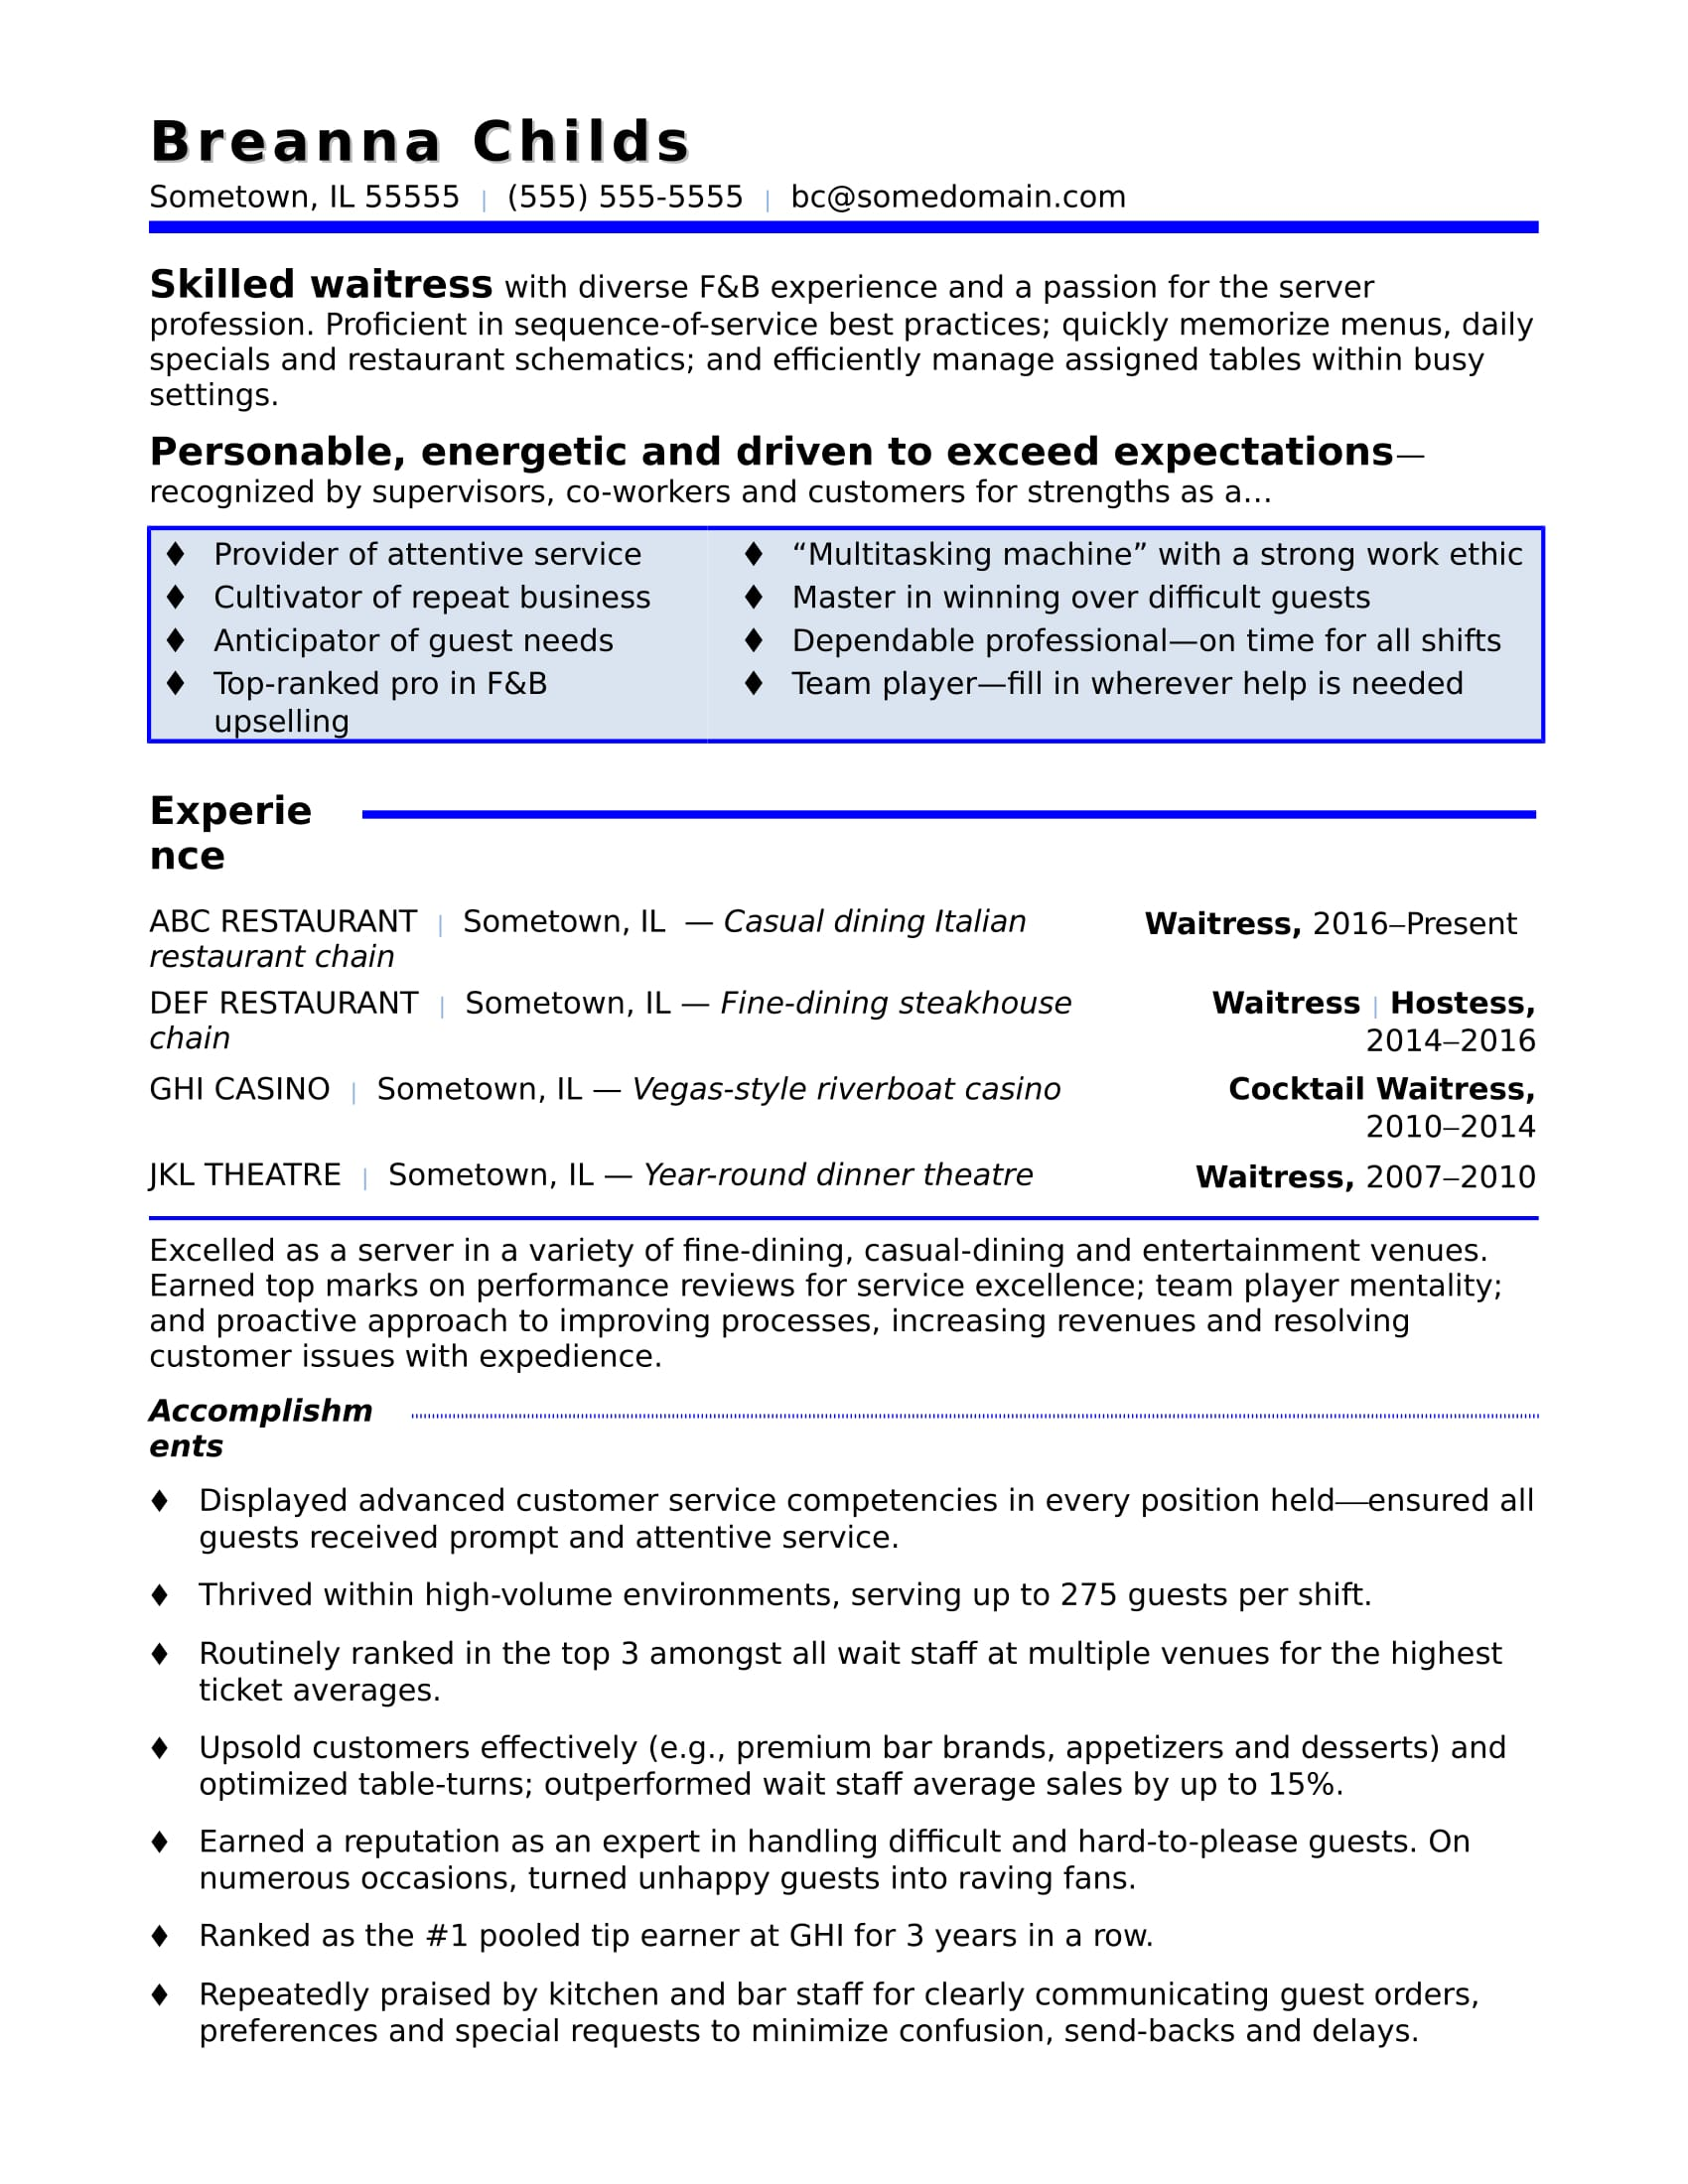 Attractive Waitress Resume Sample Regard To Sample Waitress Resume